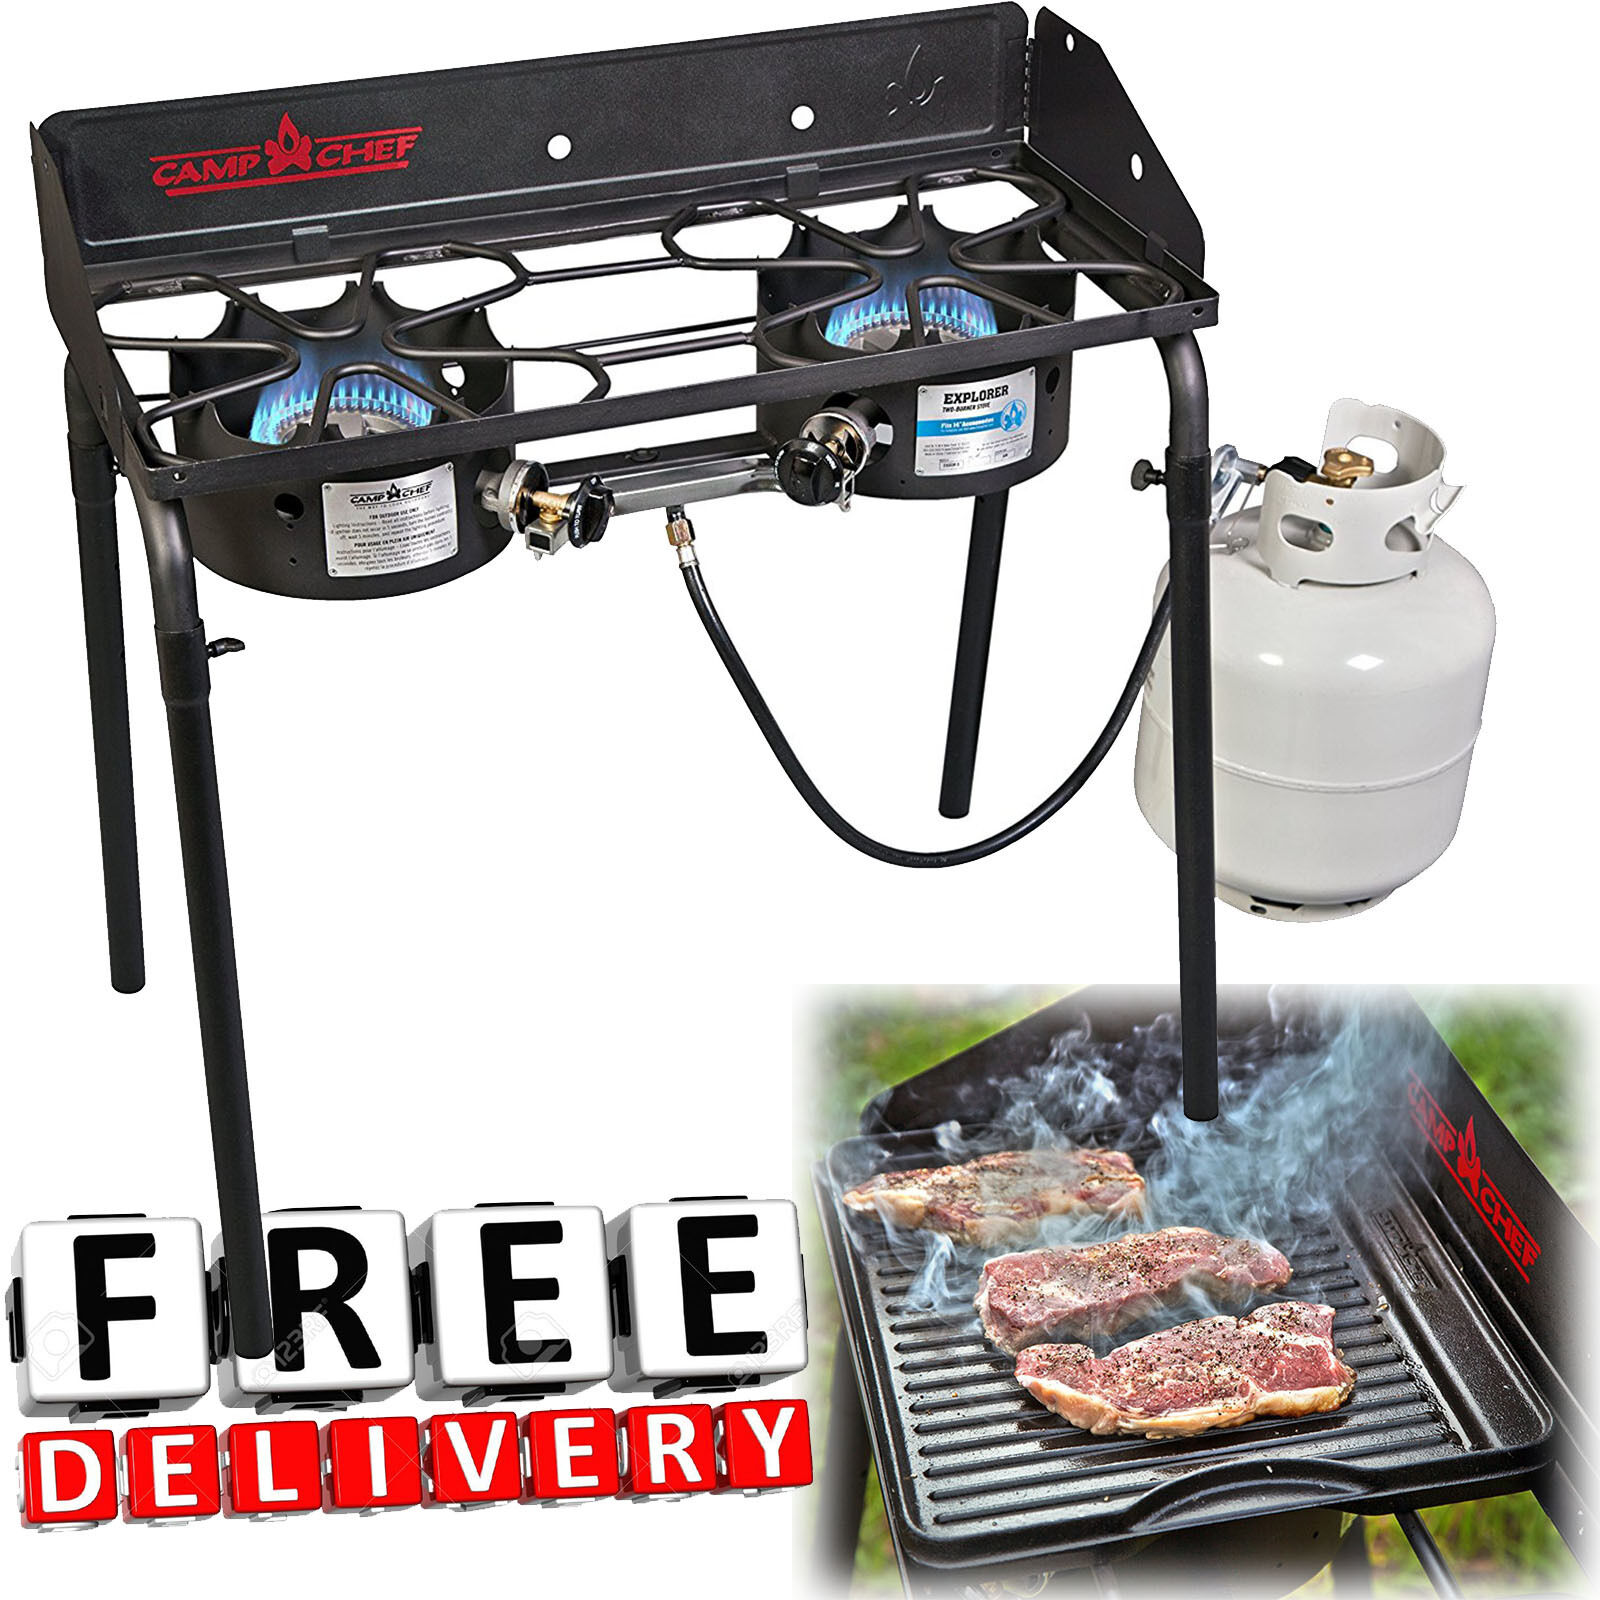 2 Burner Propane Stove Camping Camp  Portable Cooking Grill BBQ Barbecue Outdoor  enjoying your shopping